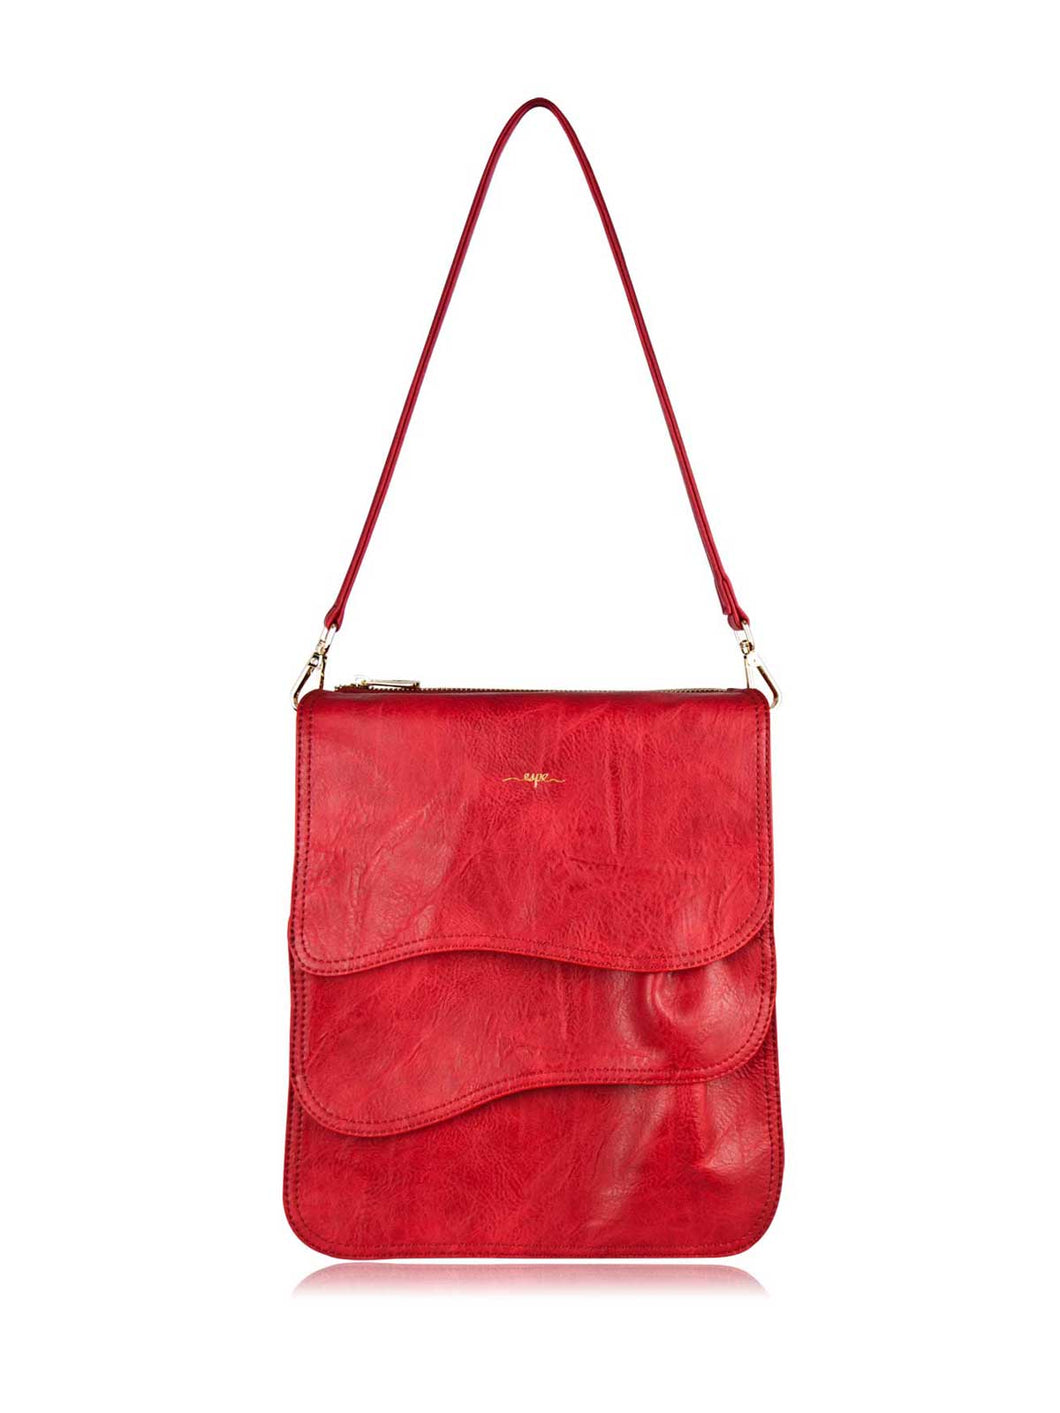 Purse -  Luxe Red H-02630-R